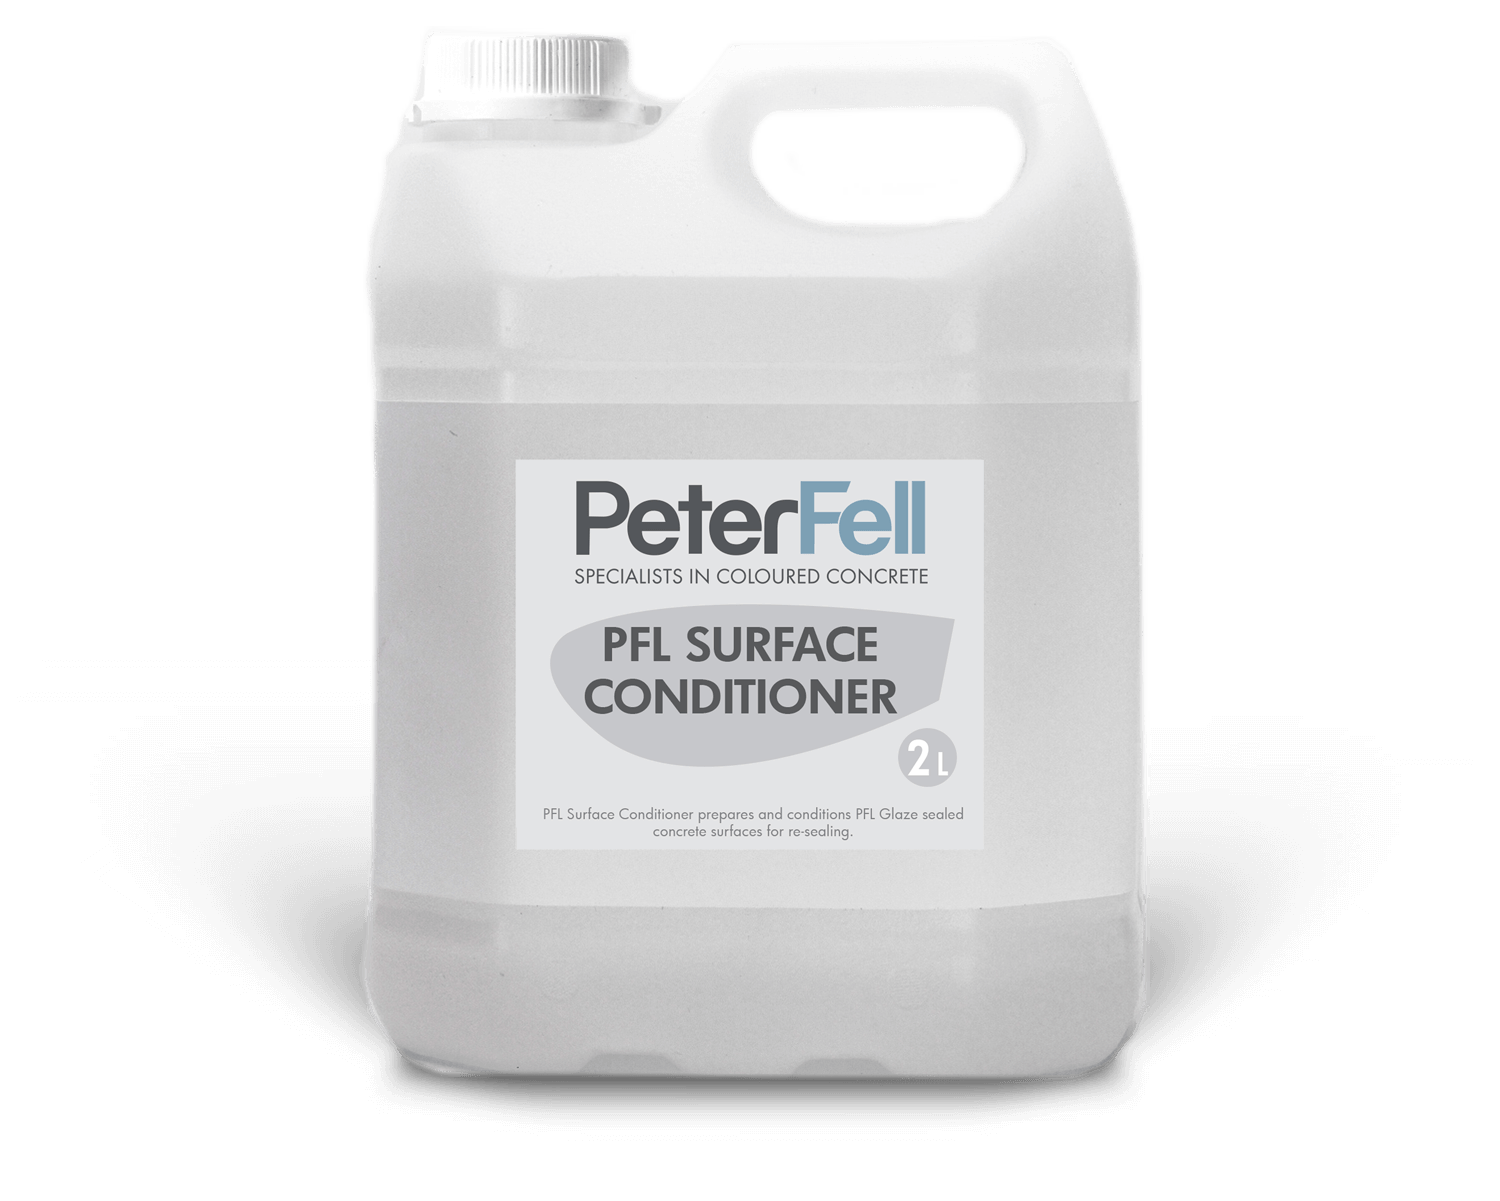 PFL Surface conditioner for concrete surfaces